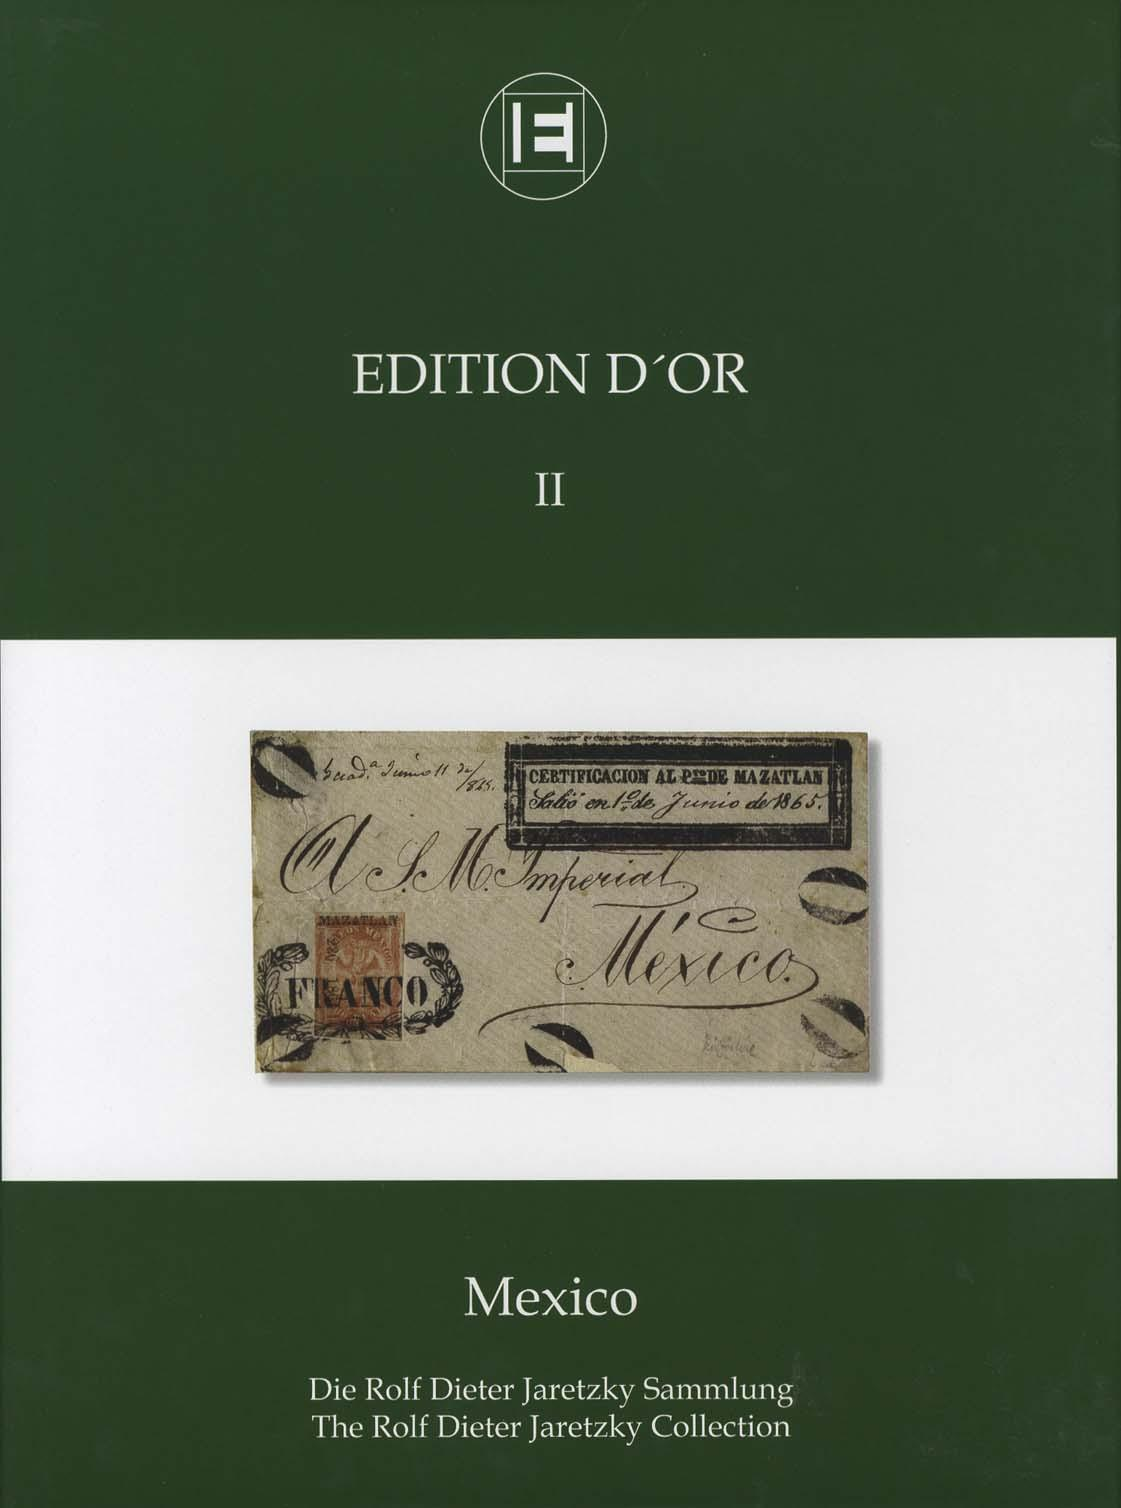 Vol. 2: Mexico • The Rolf Dieter Jaretzky Collection